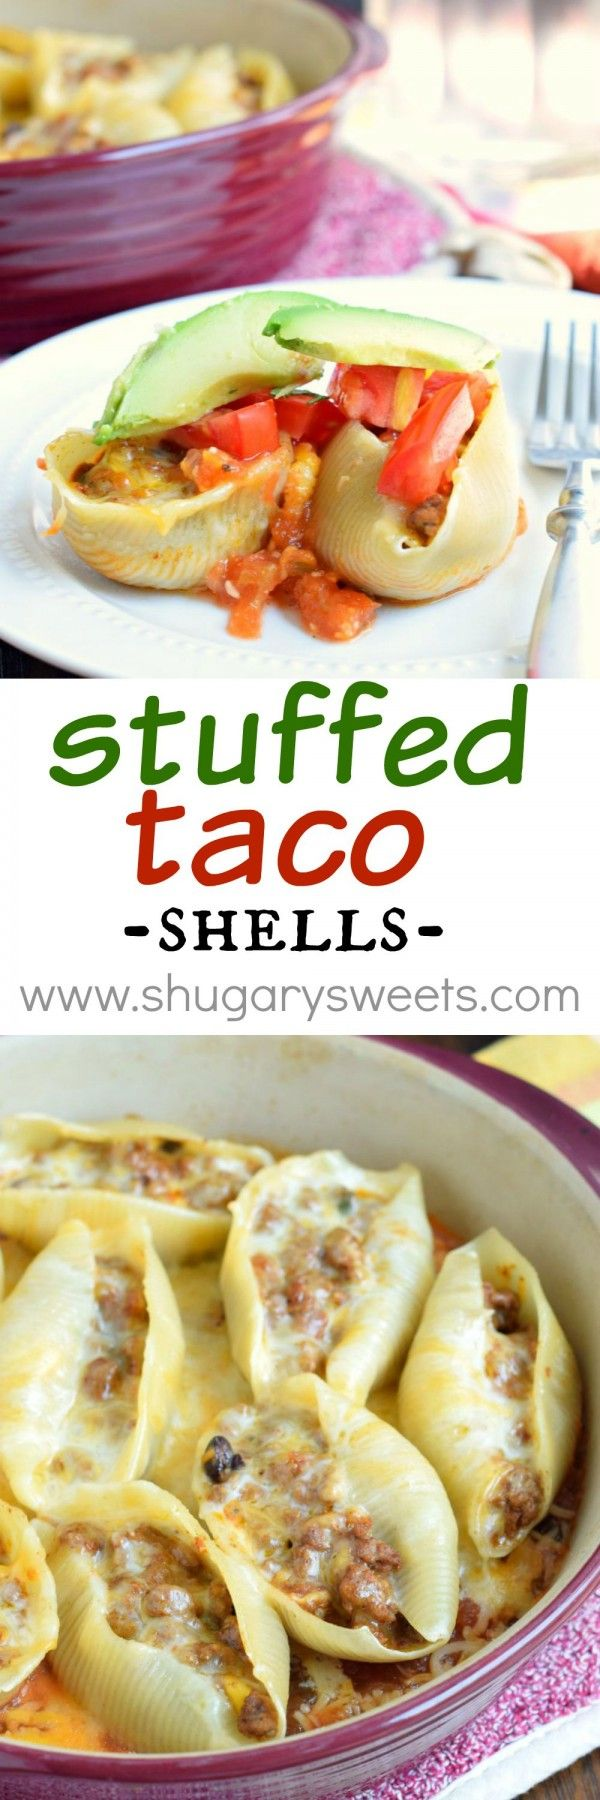 If you love easy, delicious dinner ideas, these Stuffed Taco Shells are for you! Plus, prep them in advance and freeze the shells for a later meal. Great for new moms too!